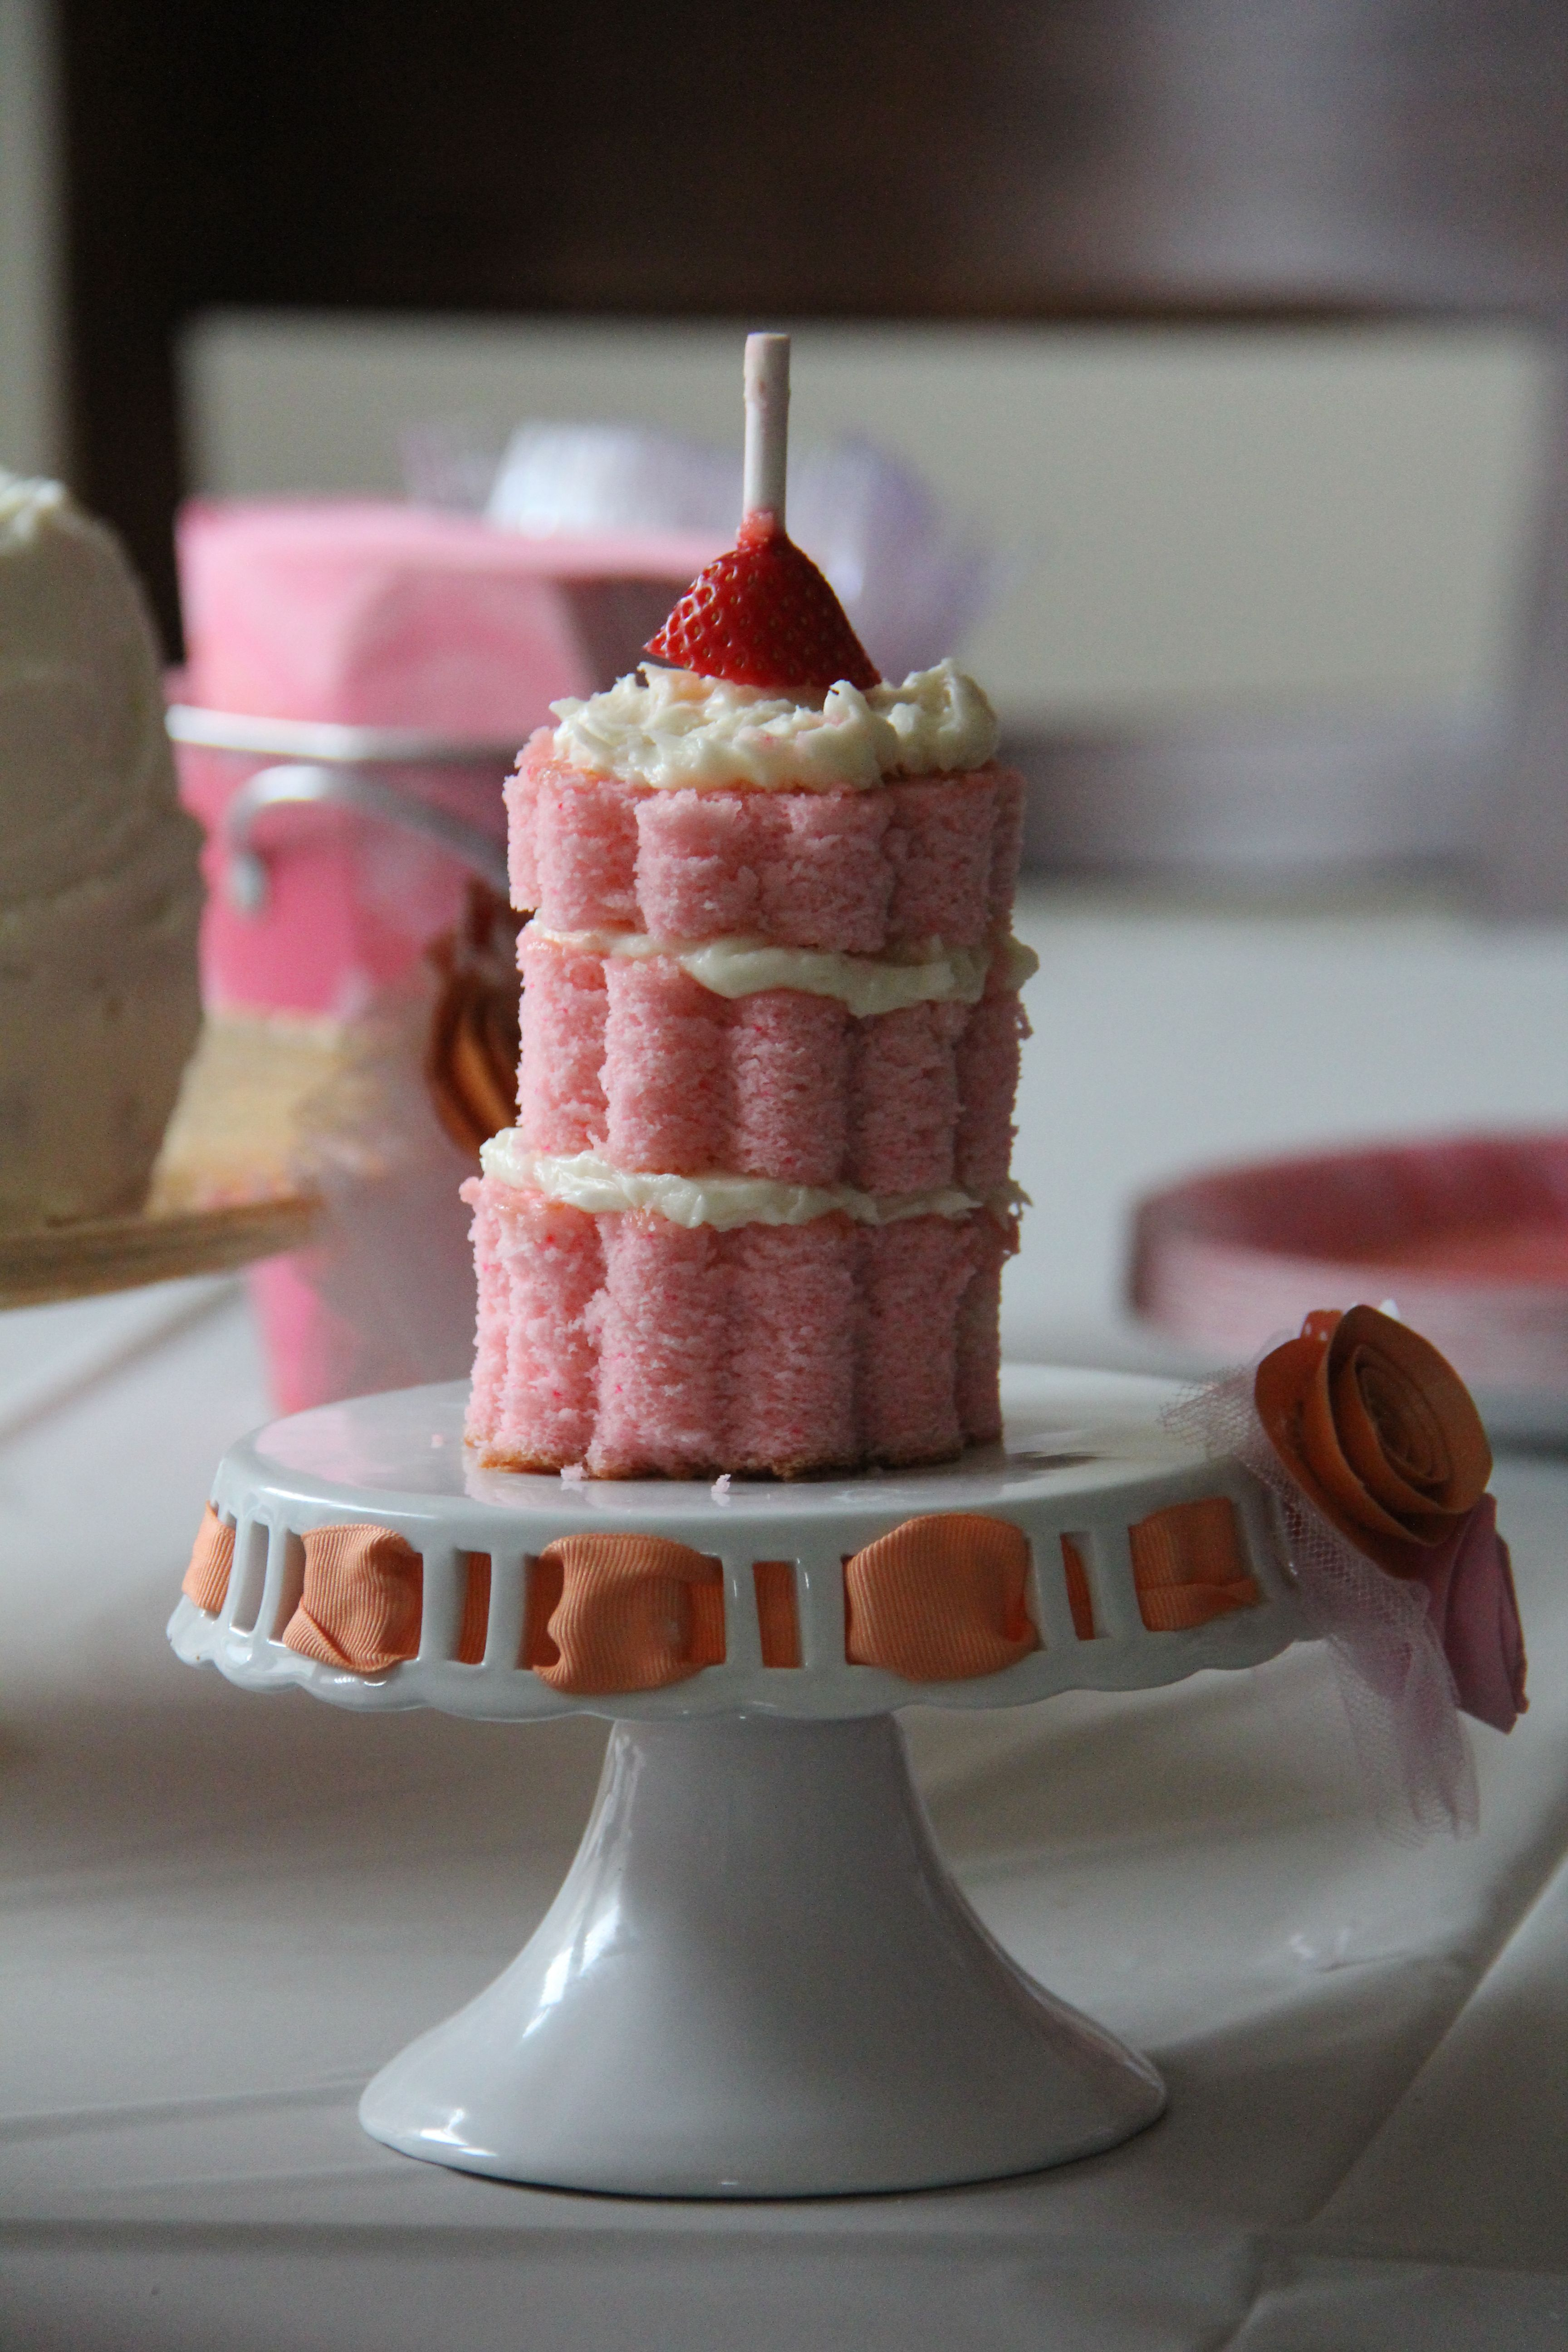 Small ombre cake for 1st bday with strawberry on top